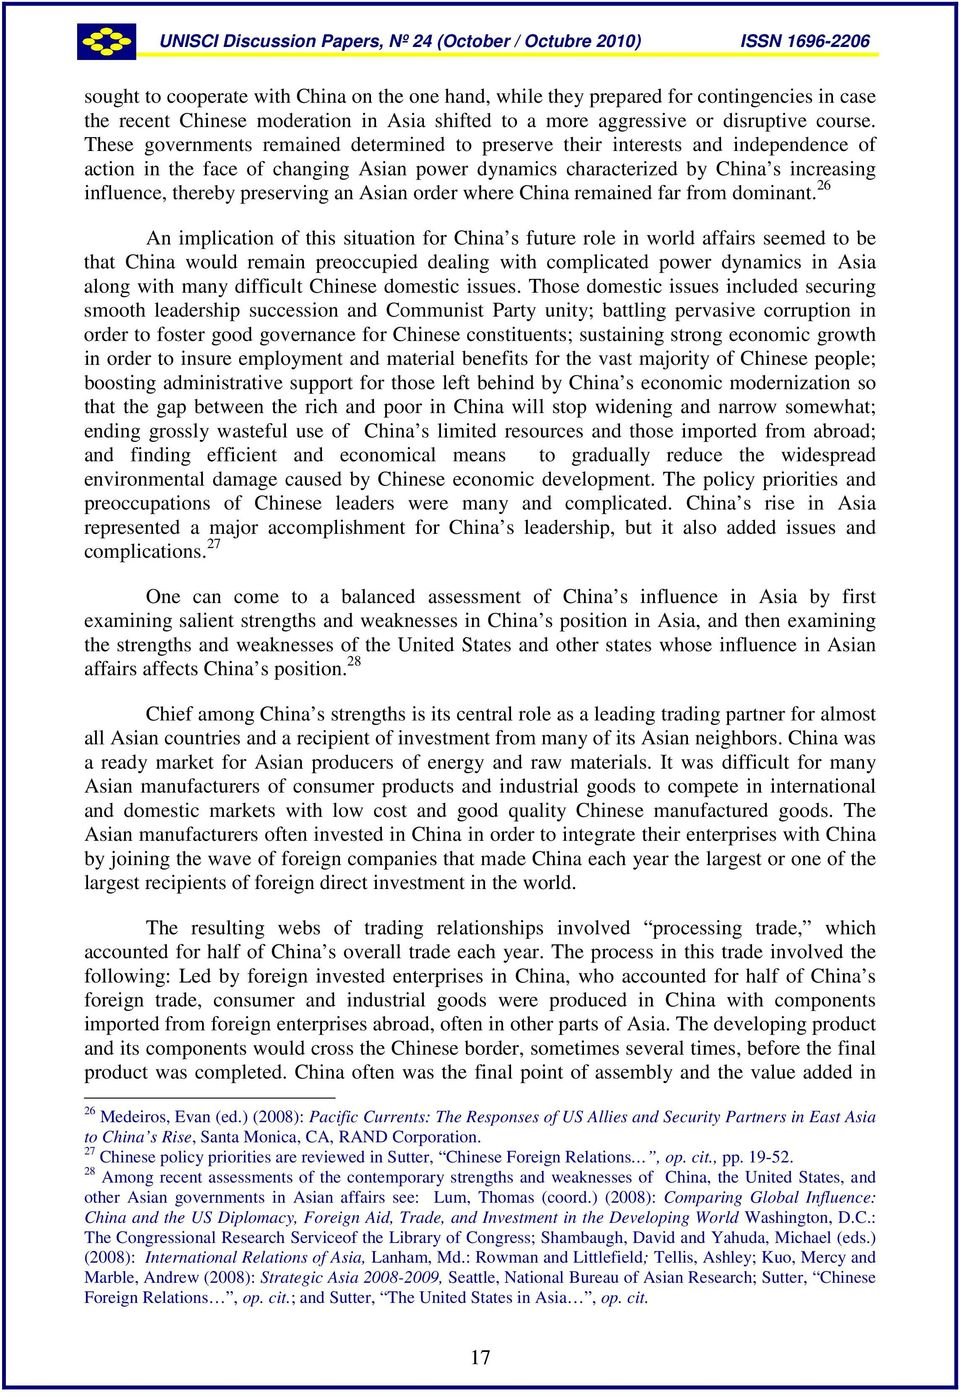 China rising in the global context pdf preserving an asian order where china remained far from dominant malvernweather Choice Image